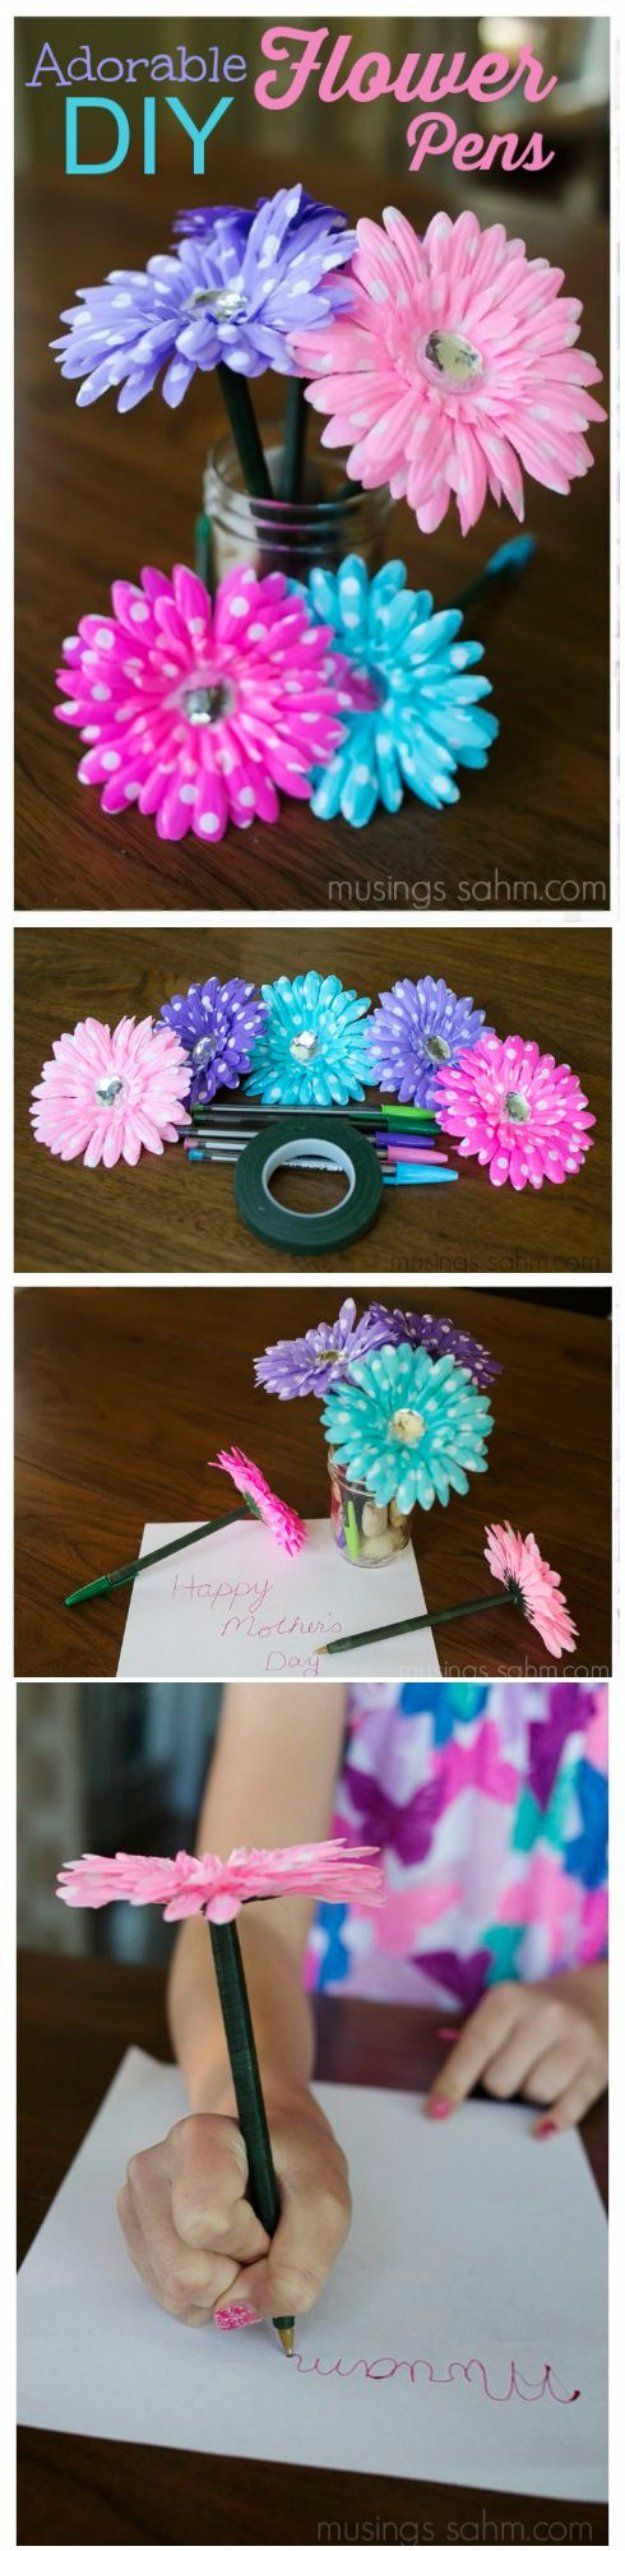 25 best ideas about crafts to make on pinterest fun diy for Great crafts to make and sell